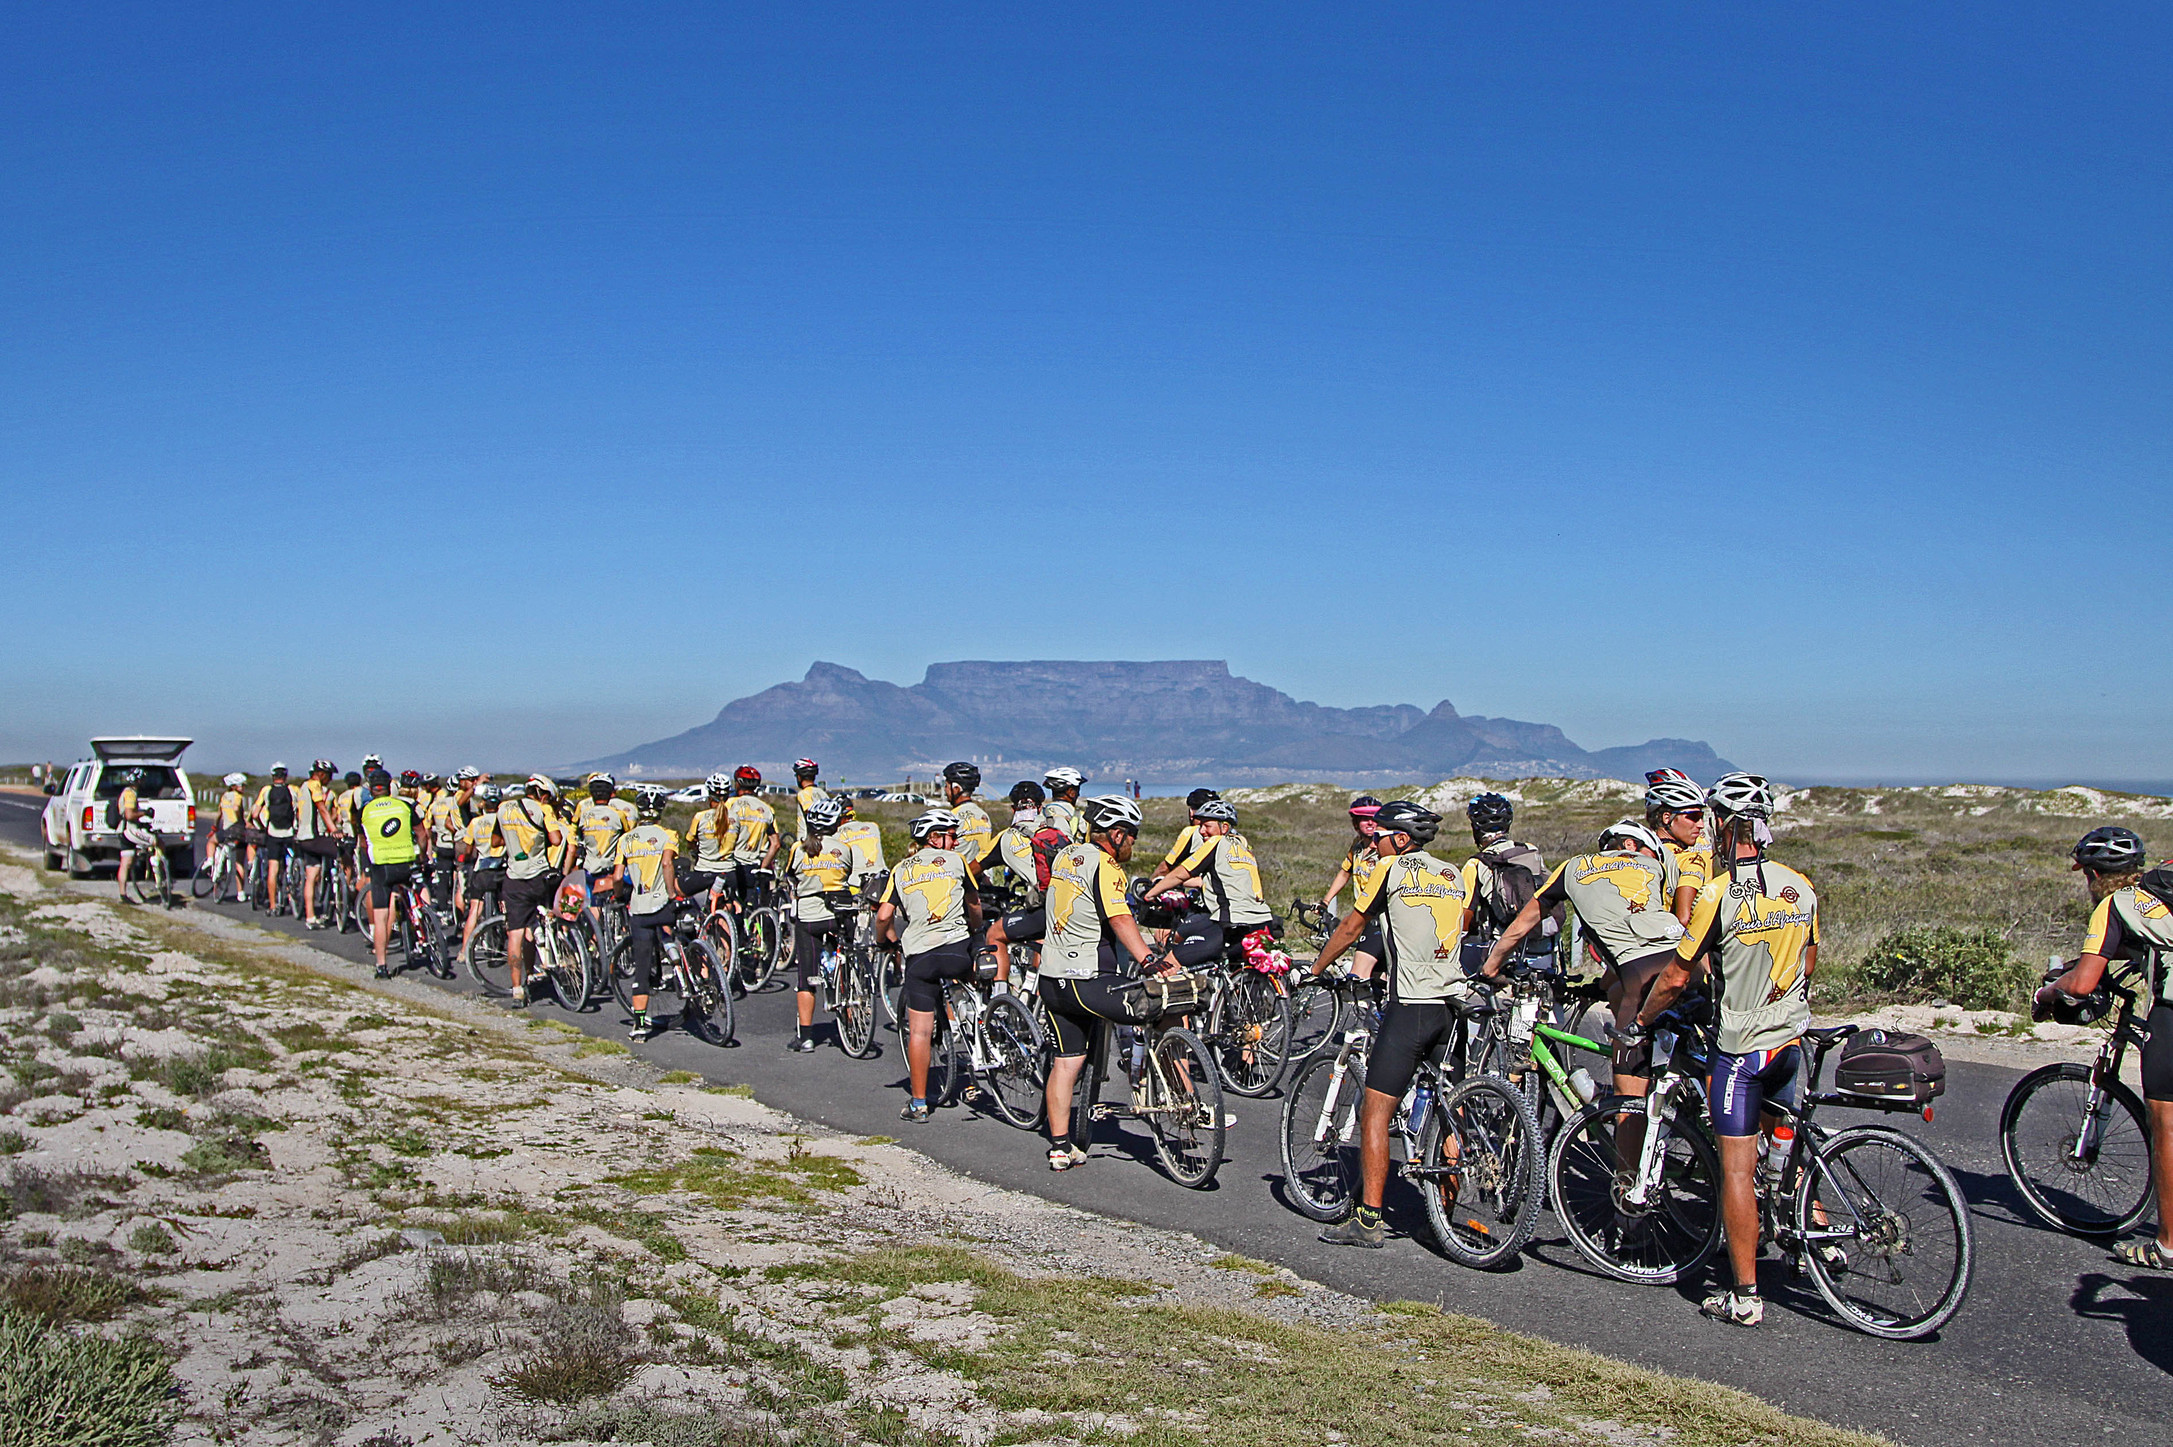 2014 Tour d'Afrique Closing Ceremonies in Cape Town